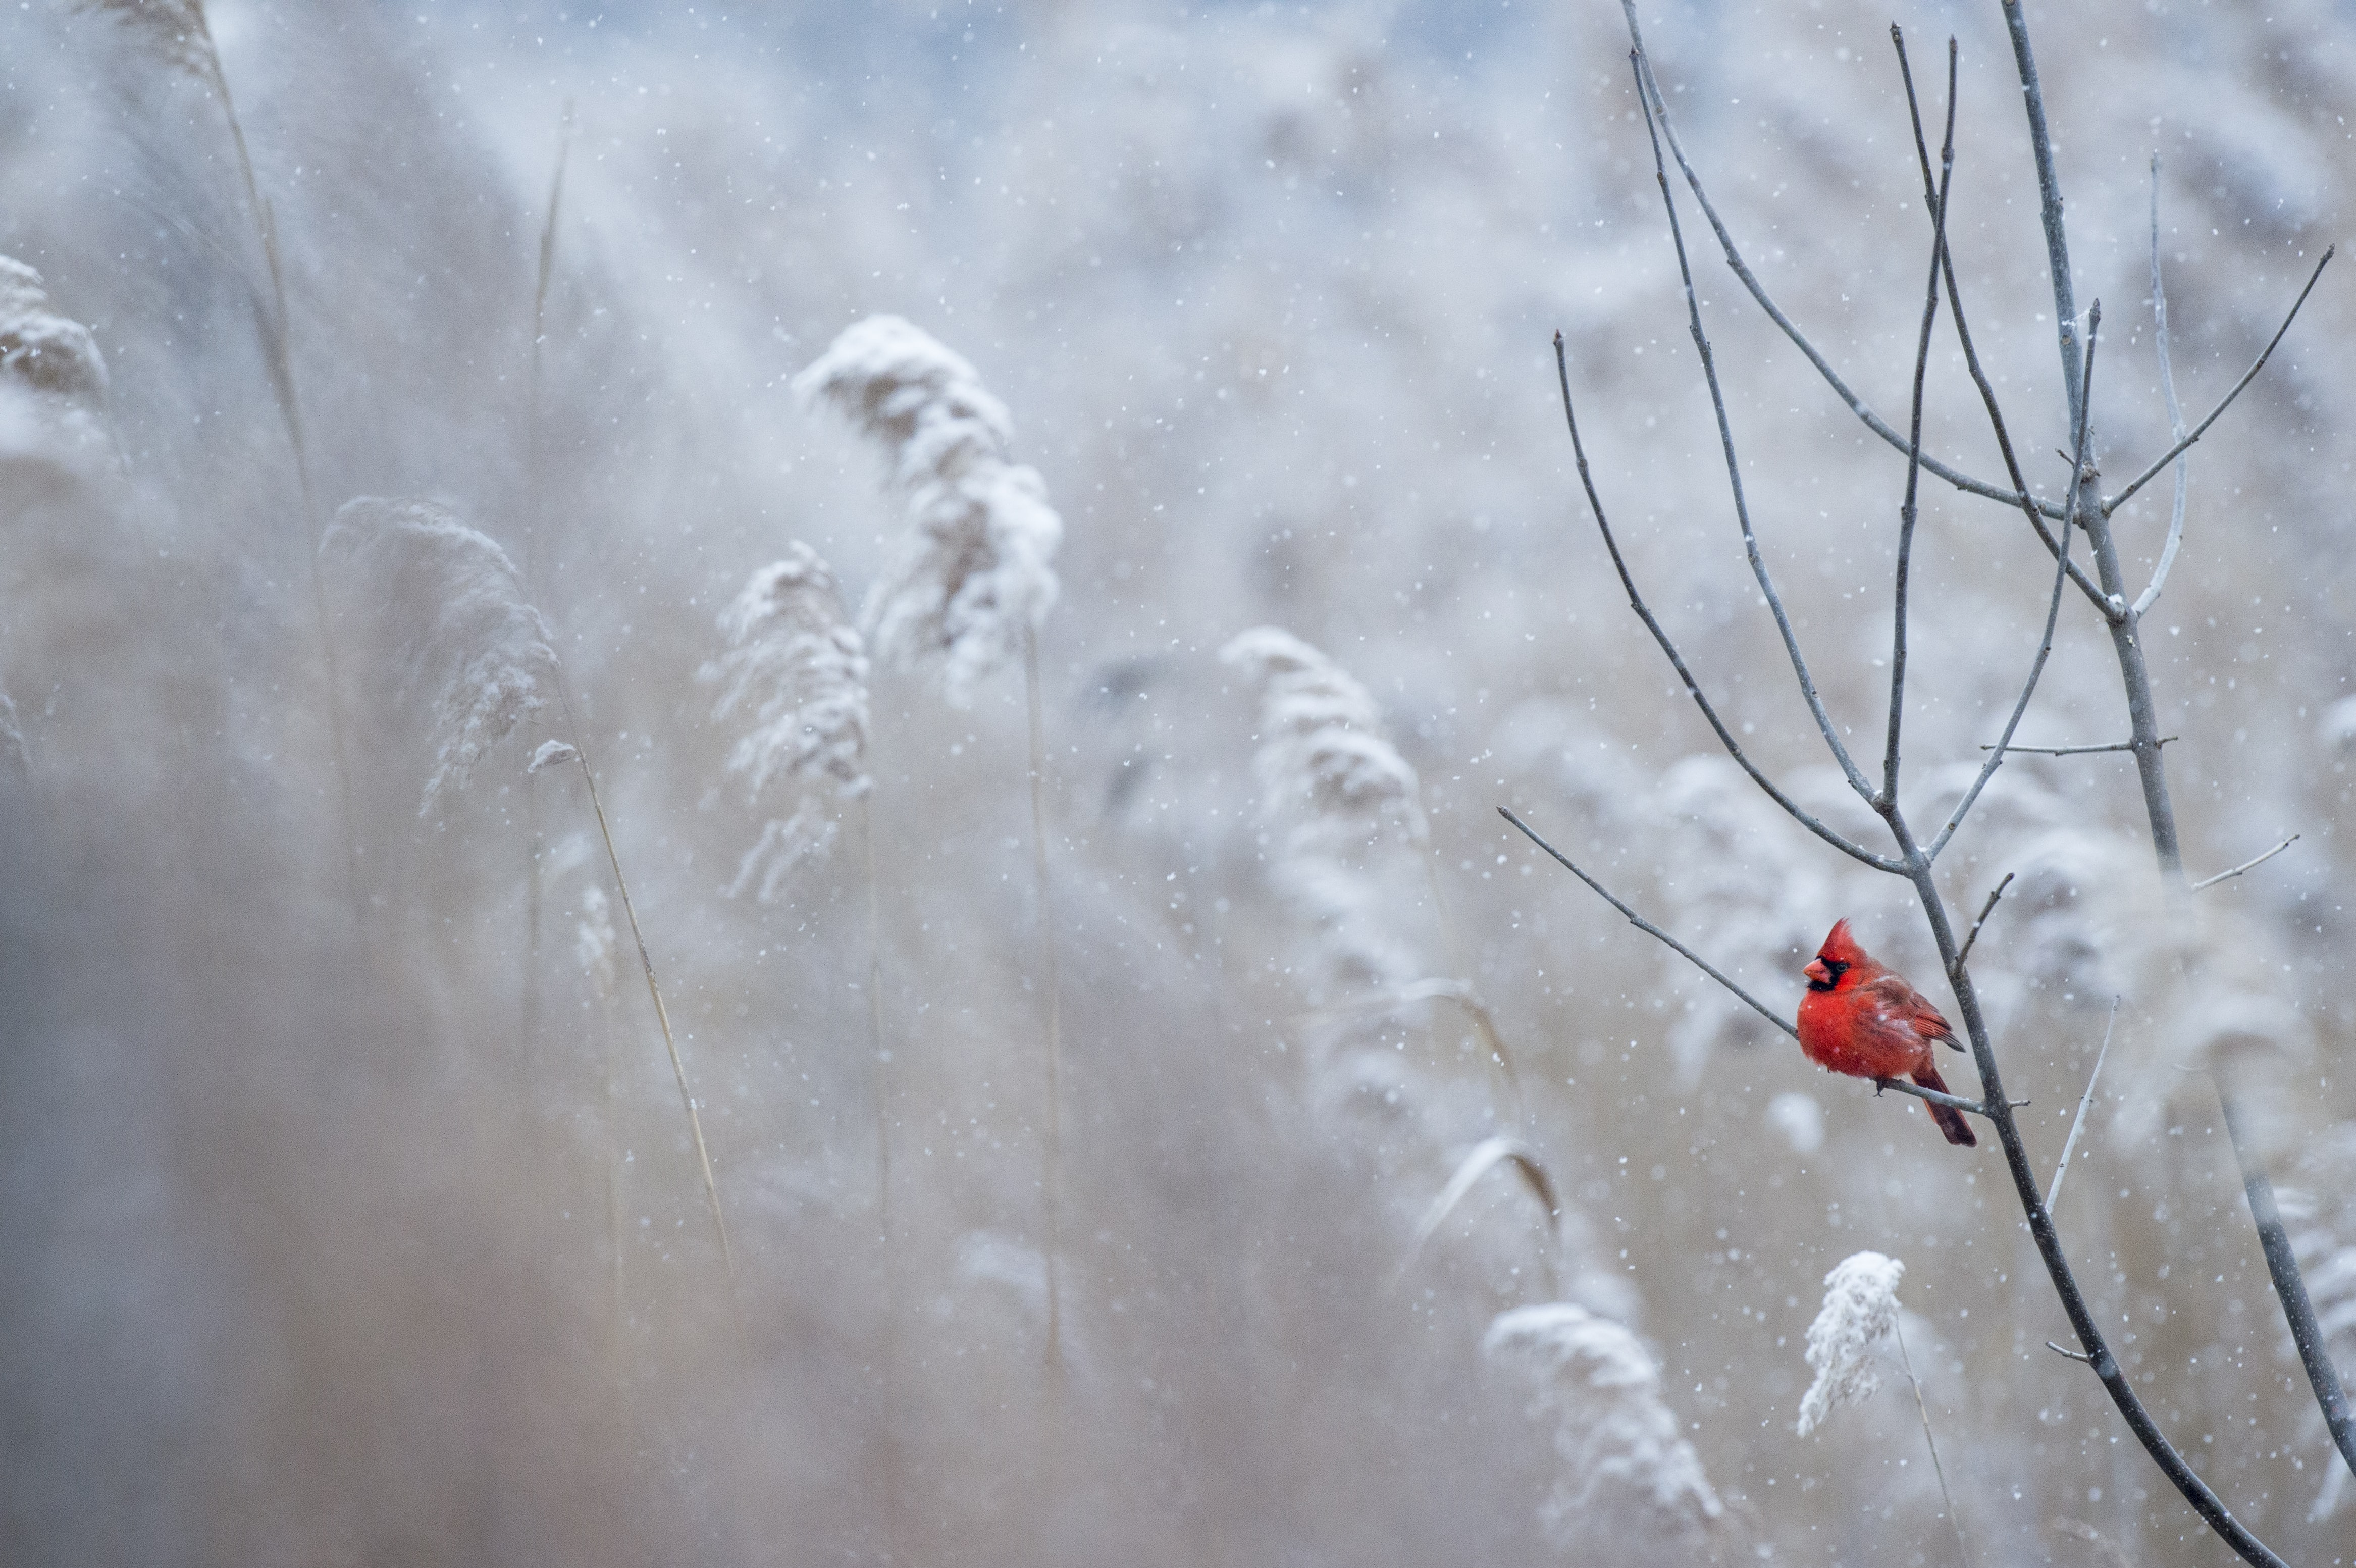 A bright red cardinal bird sitting on a bare branch against the pale backdrop of tall grasses